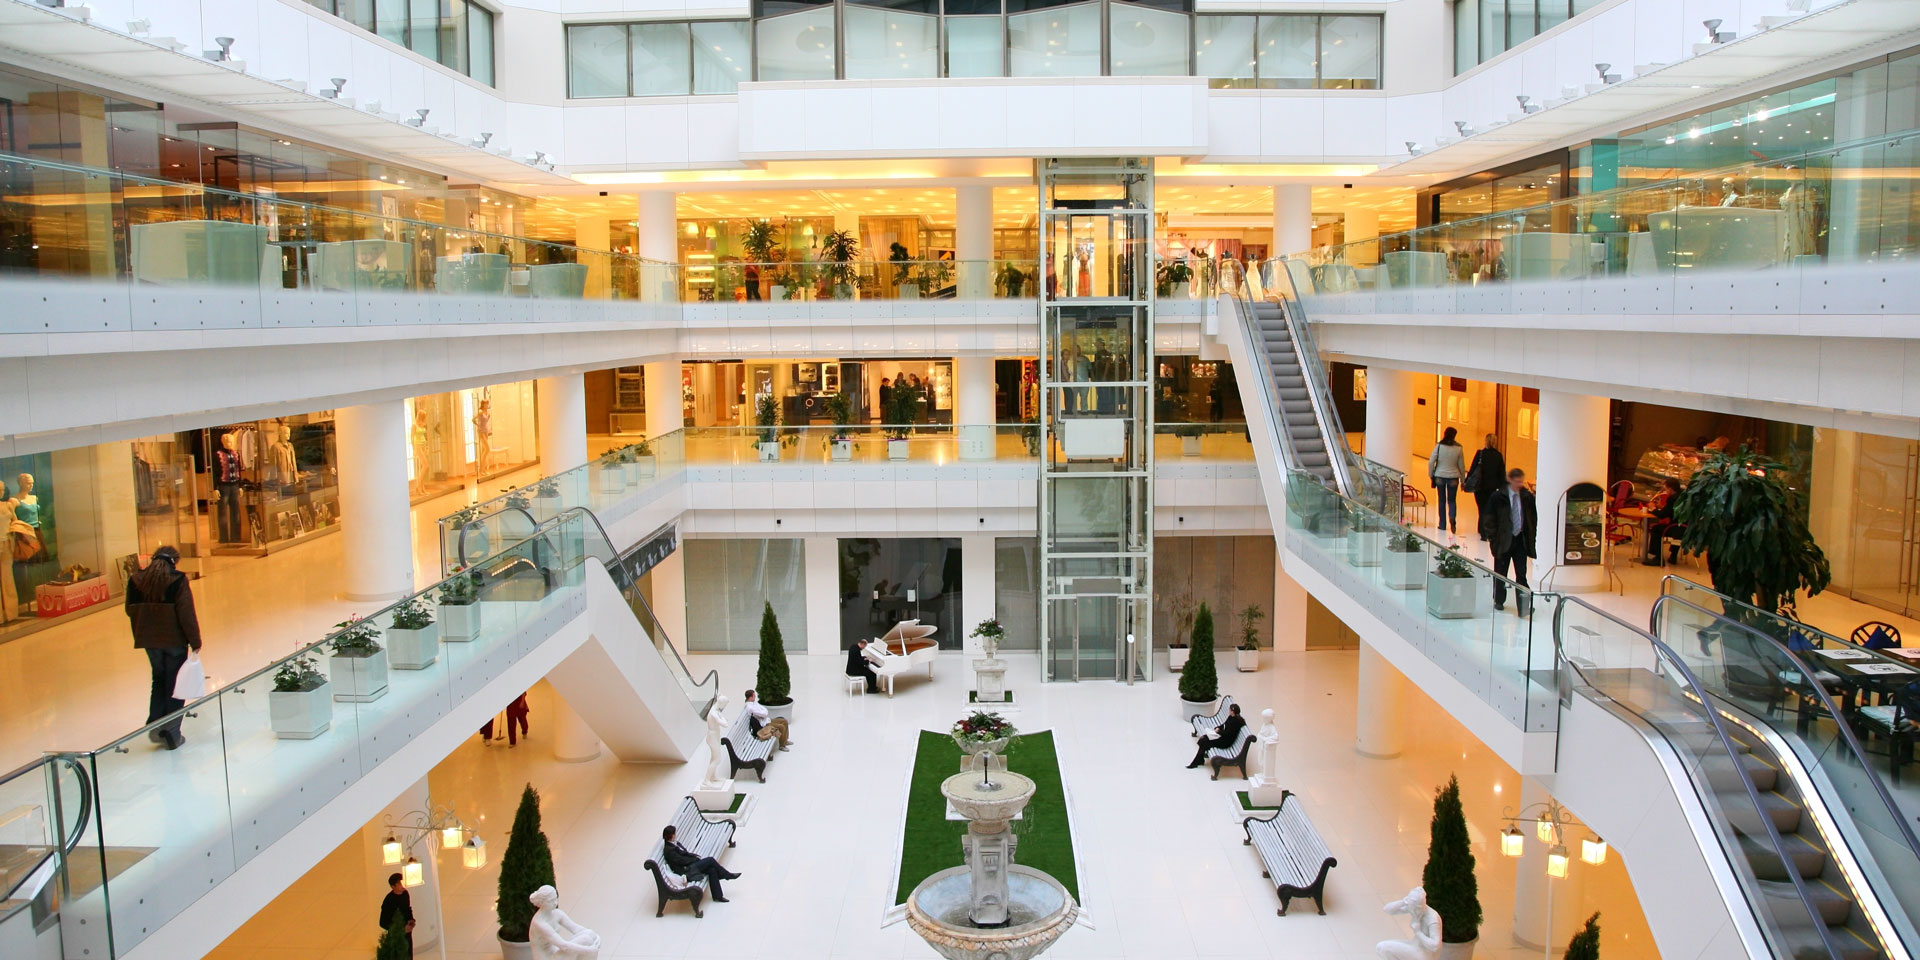 Marriott deepens relationship with Simon Malls